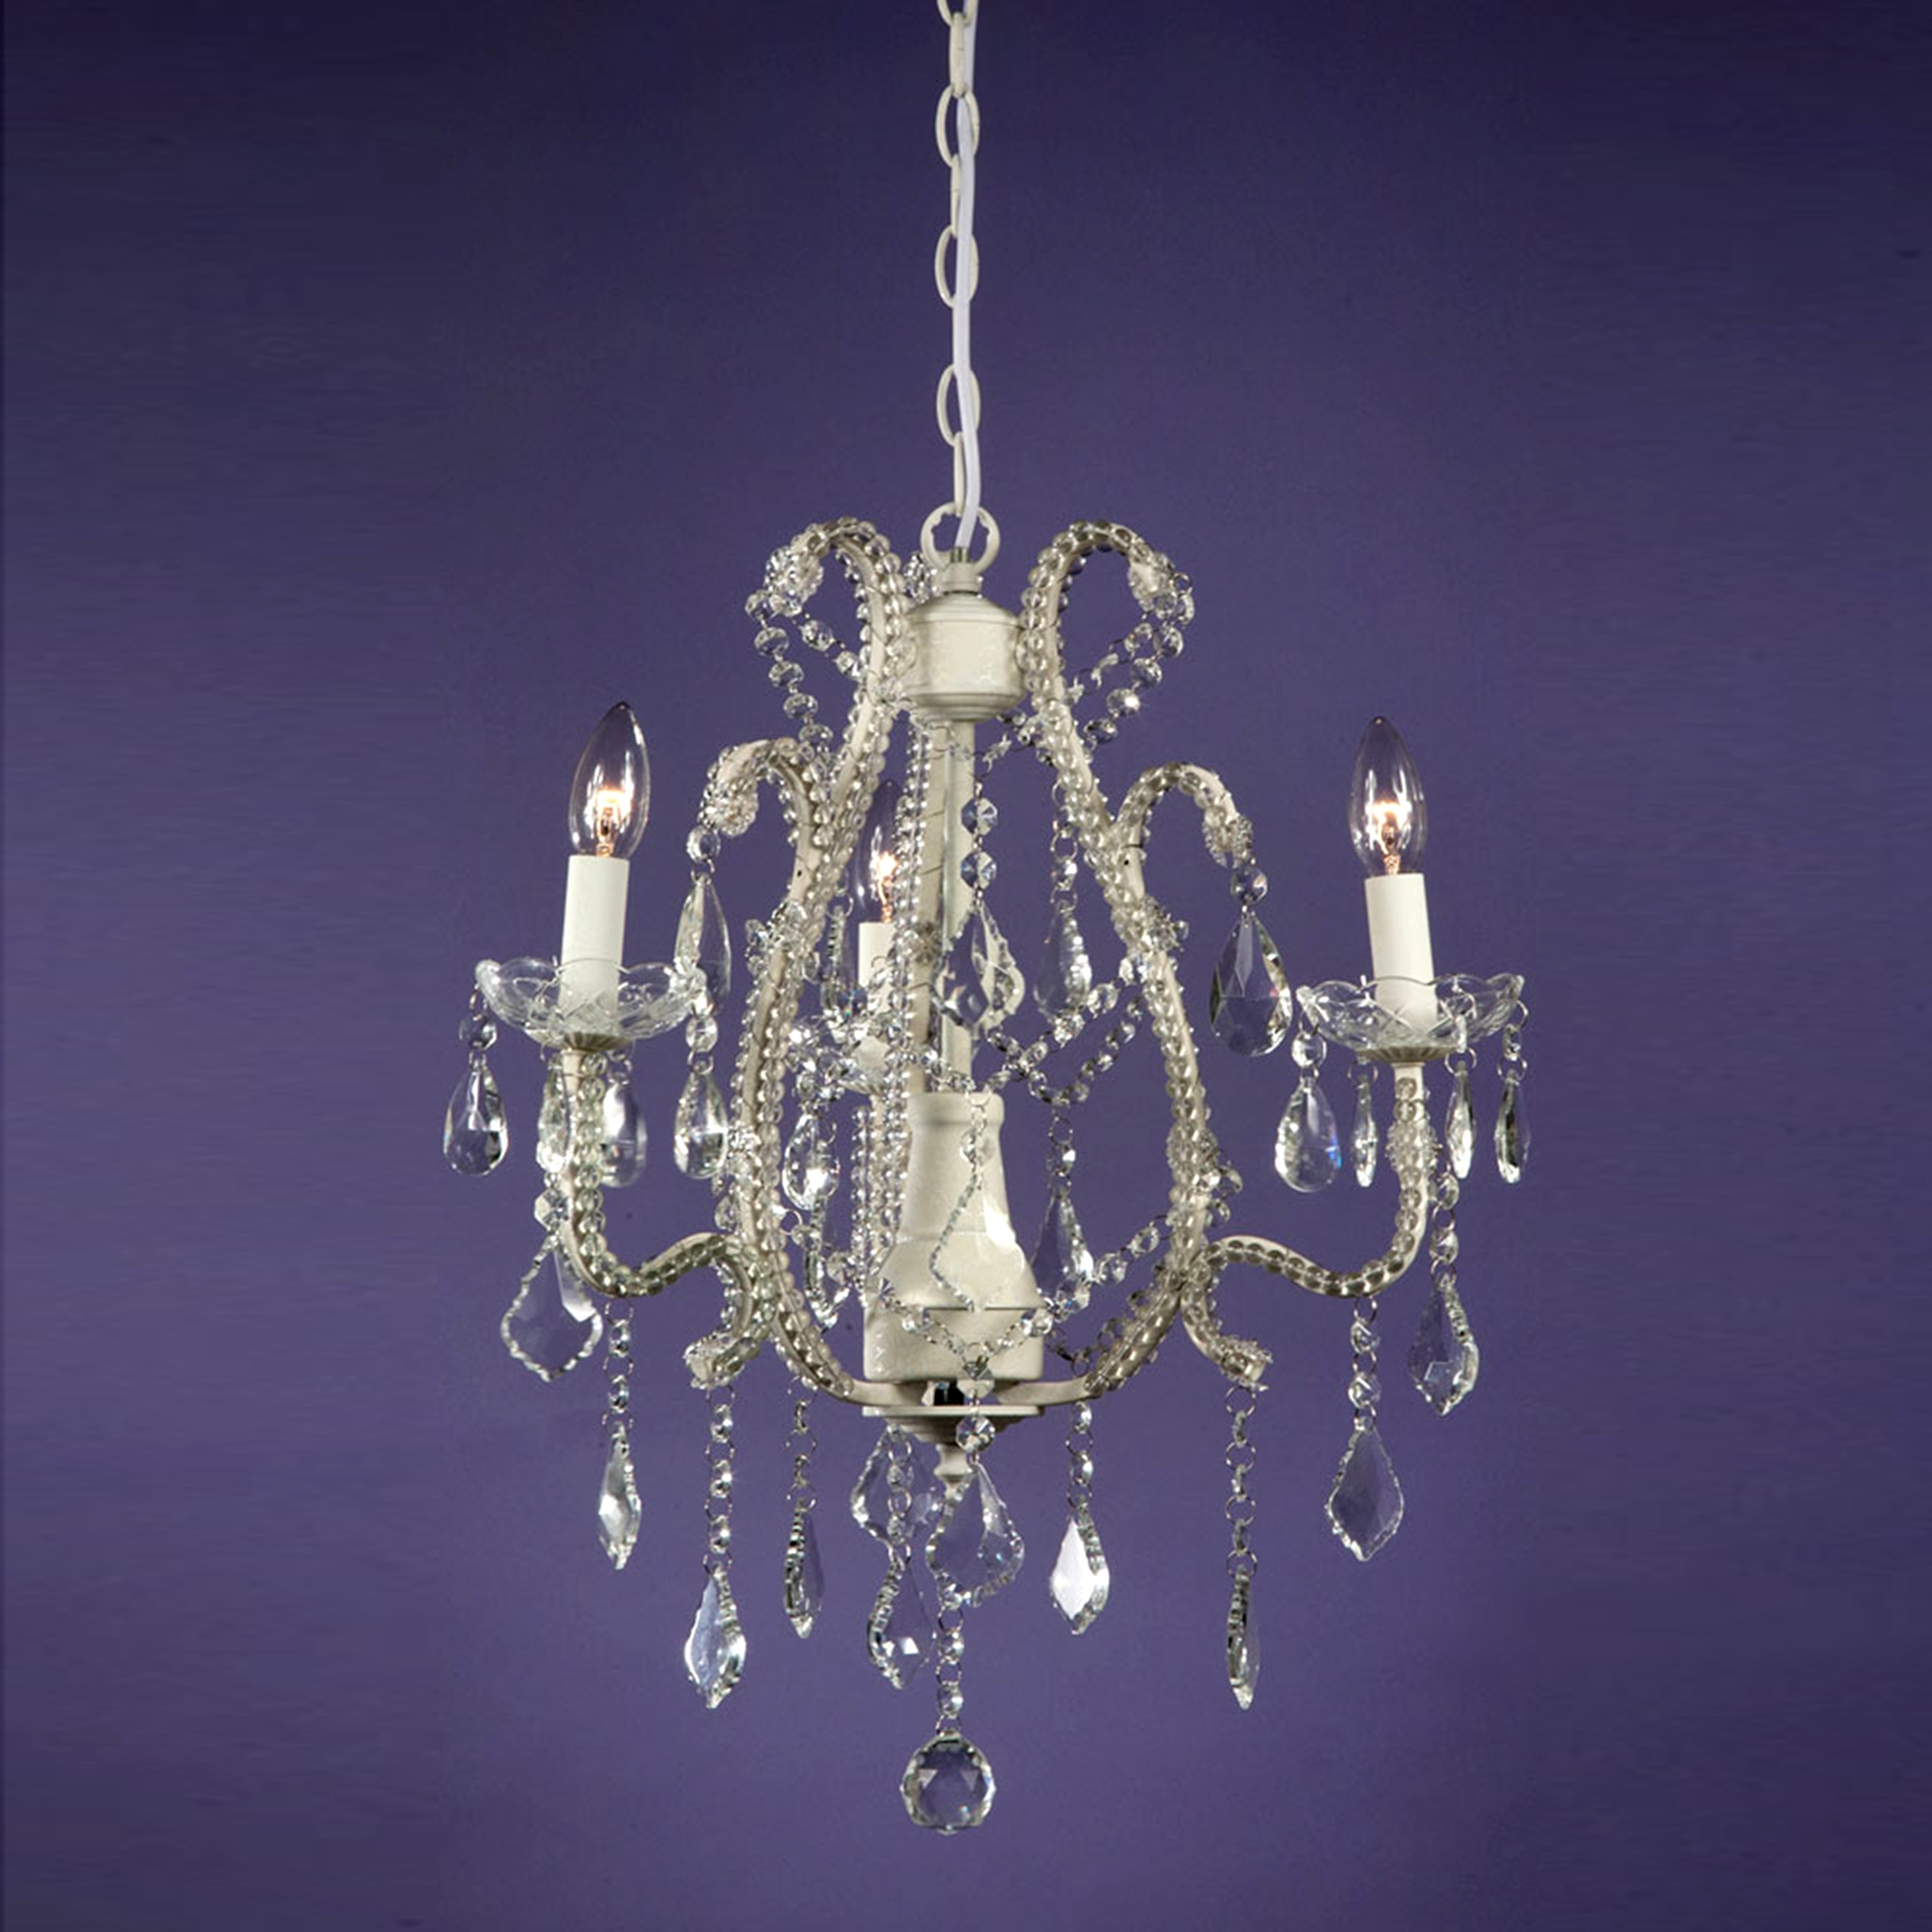 Marie Therese 3 Light Chandelier - Cream Crack